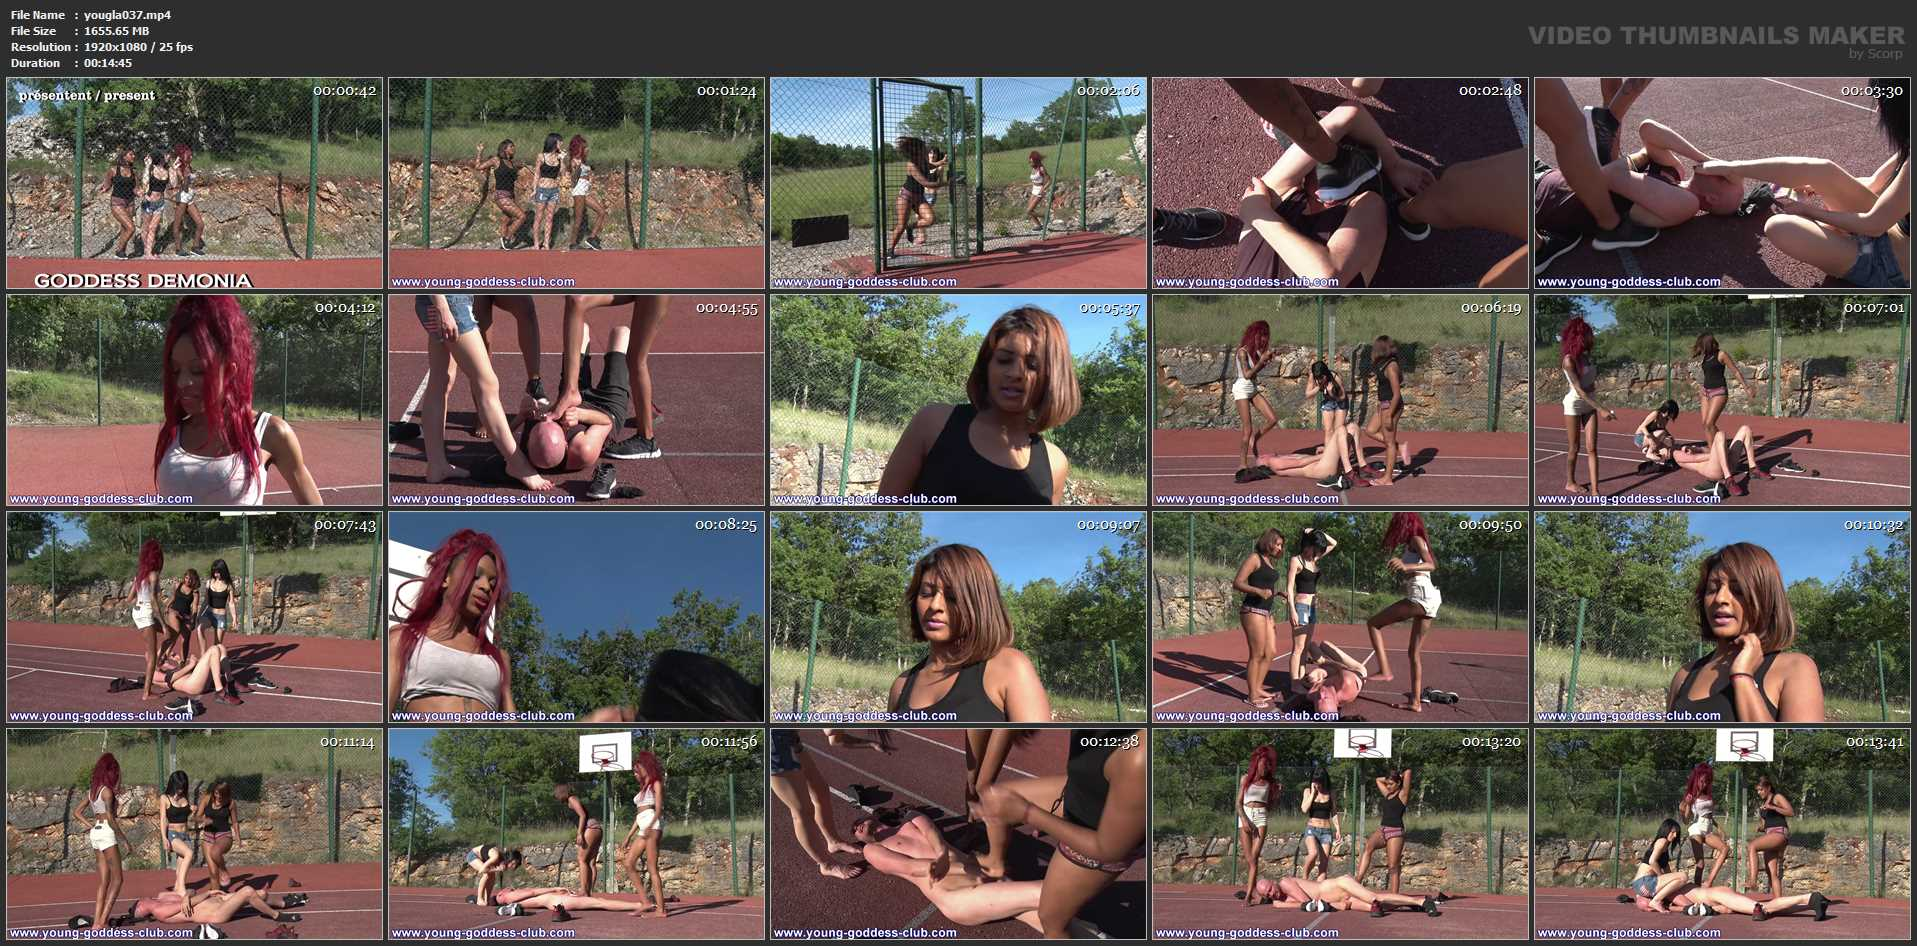 GODDESS DEMONIA, GODDESS ANAIS, GODDESS SEPHORA In Scene: YOU THINK YOU ARE JORDAN PART 1 - YOUNG GODDESS LAND - FULL HD/1080p/MP4